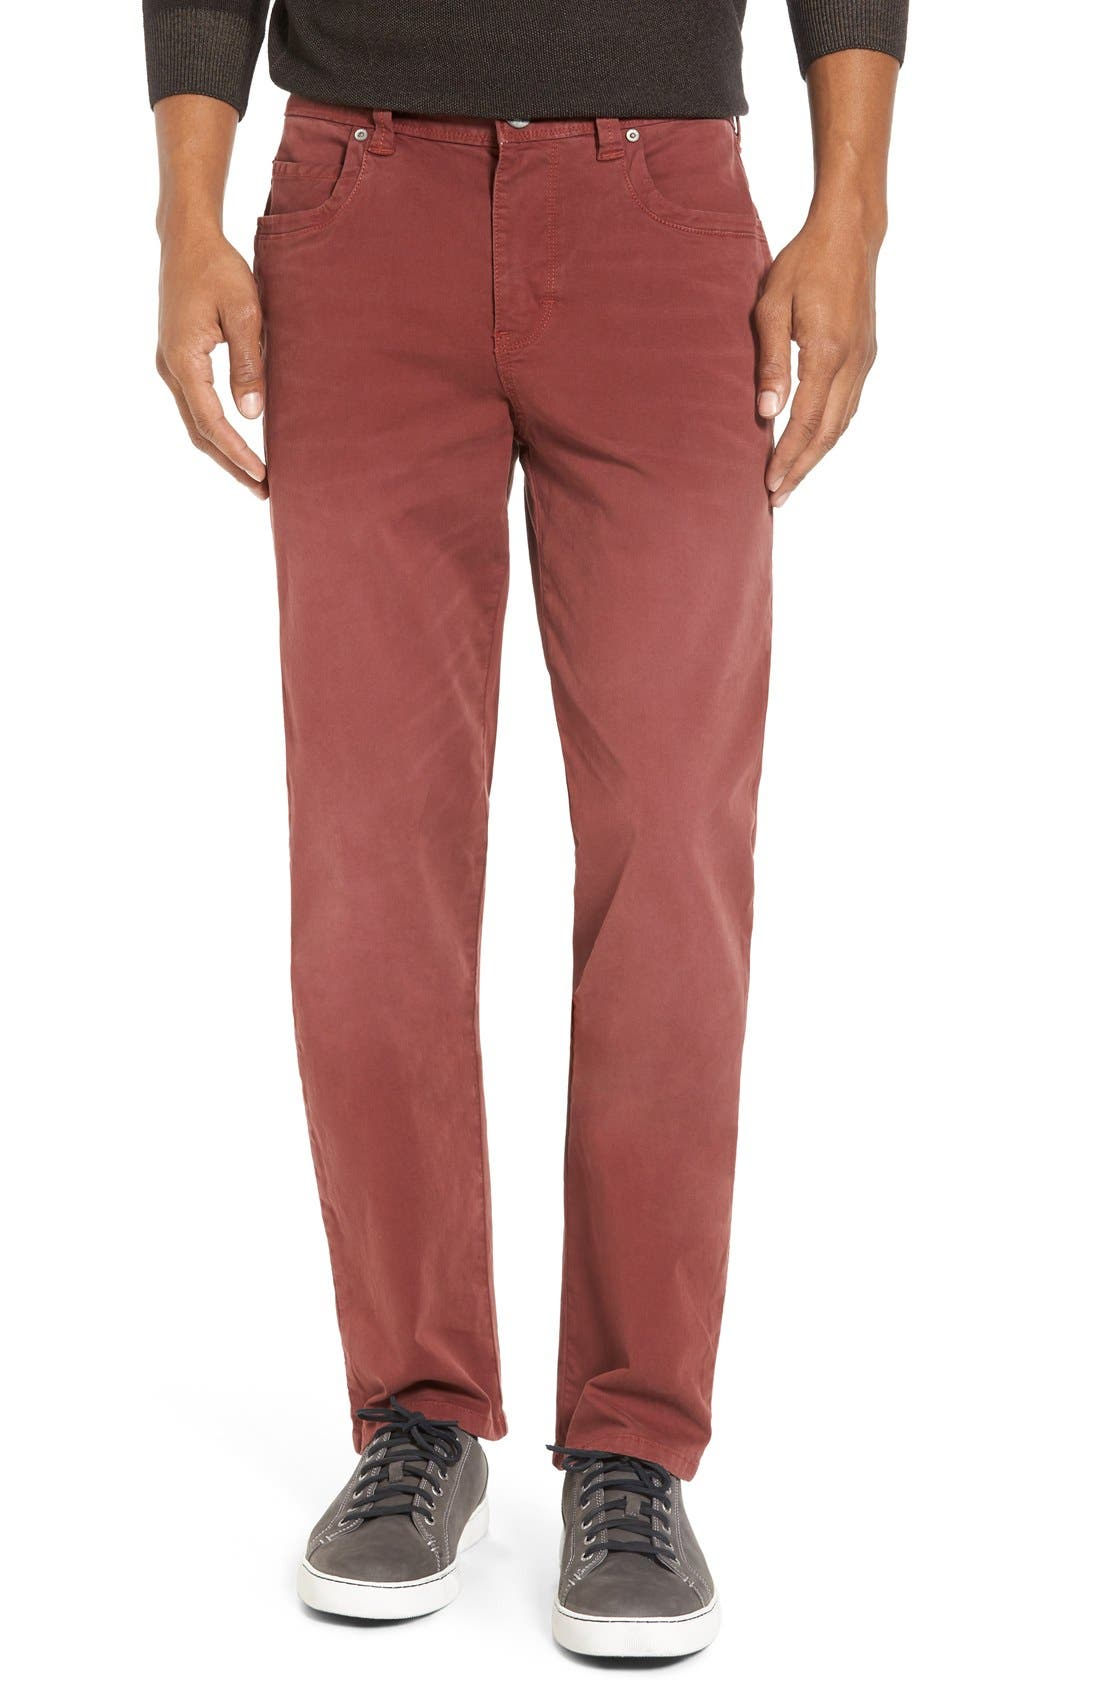 'Santiago' Washed Twill Pants,                         Main,                         color, Maroon